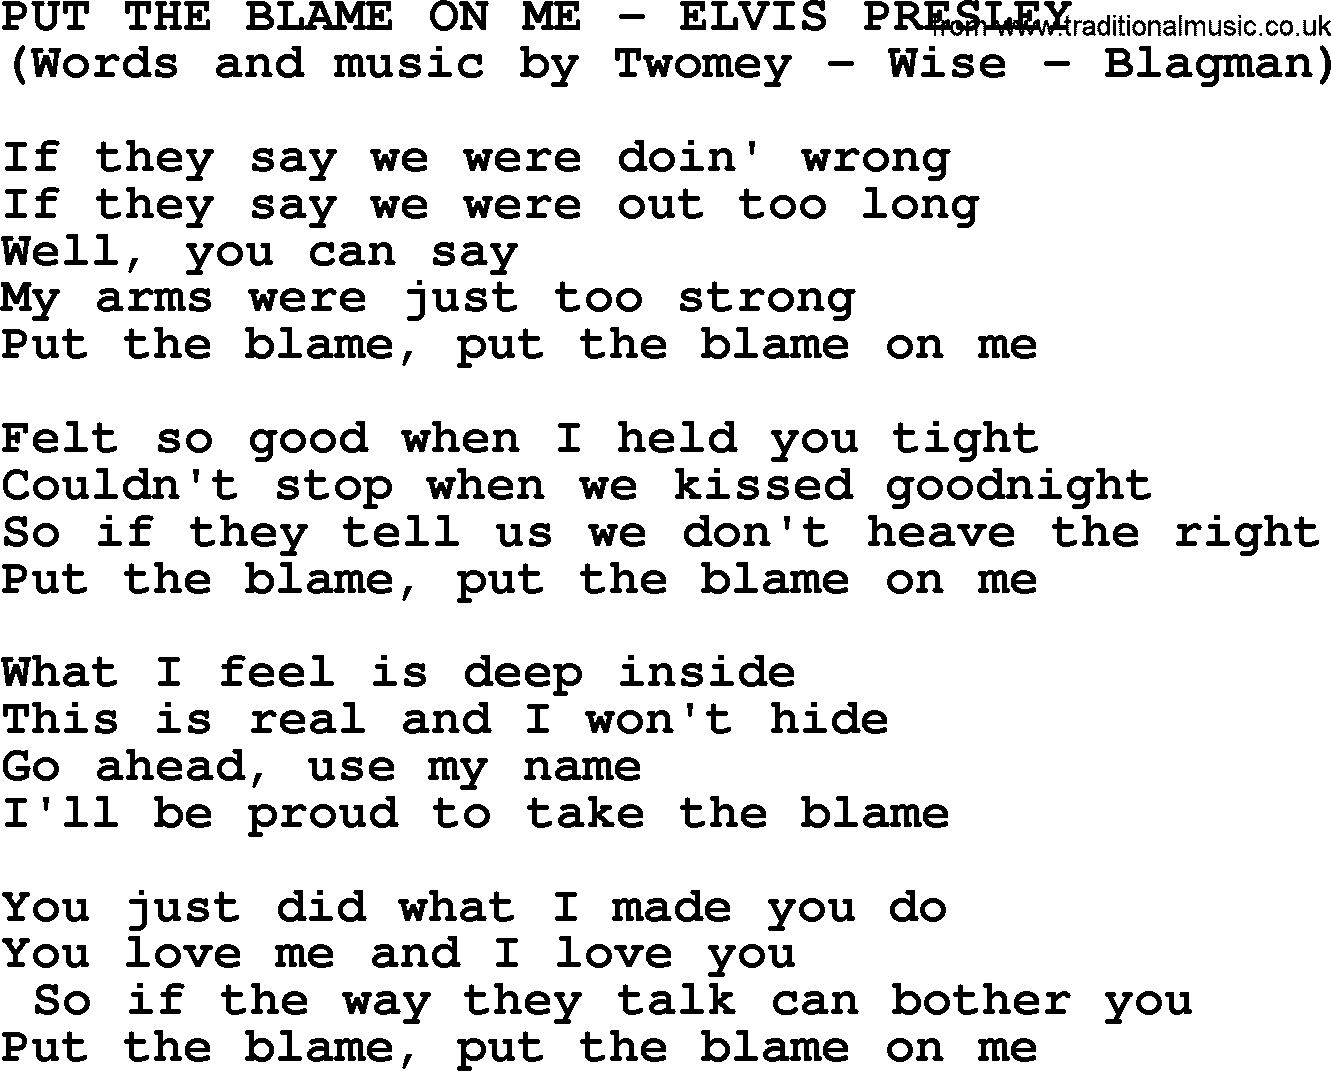 You could put the blame on me lyrics